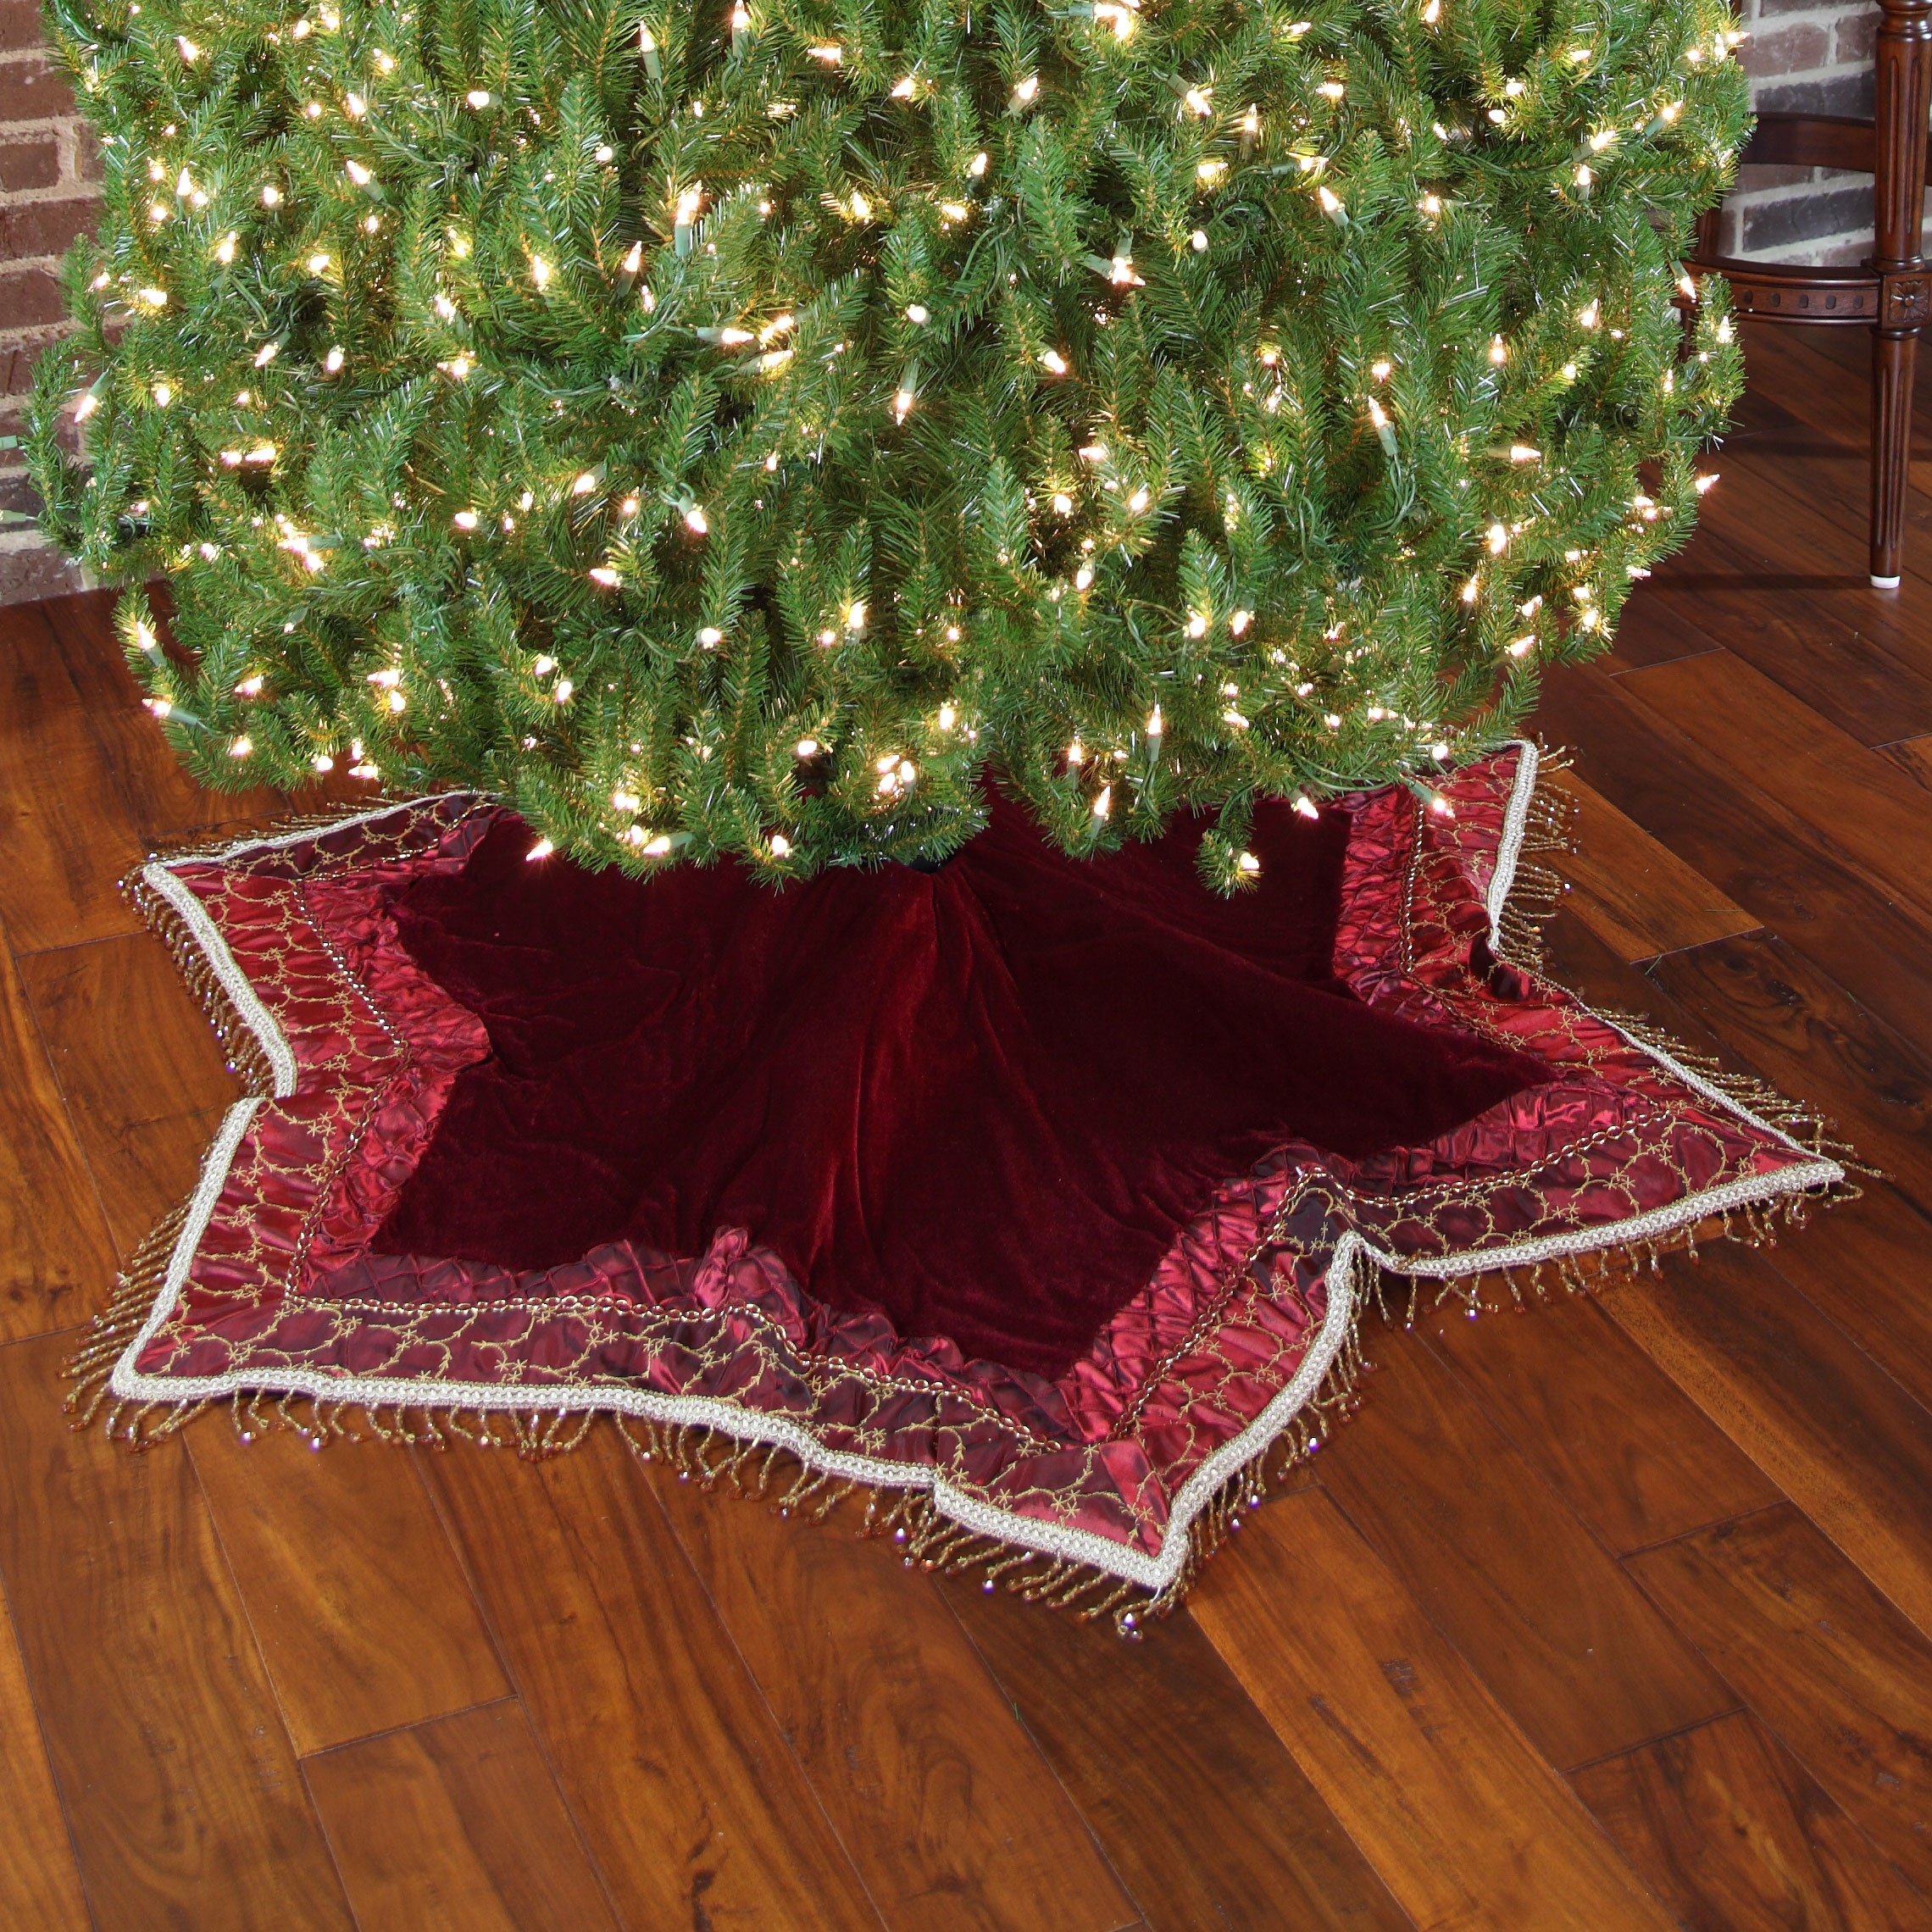 Burgundy Tassle Christmas Tree Skirt